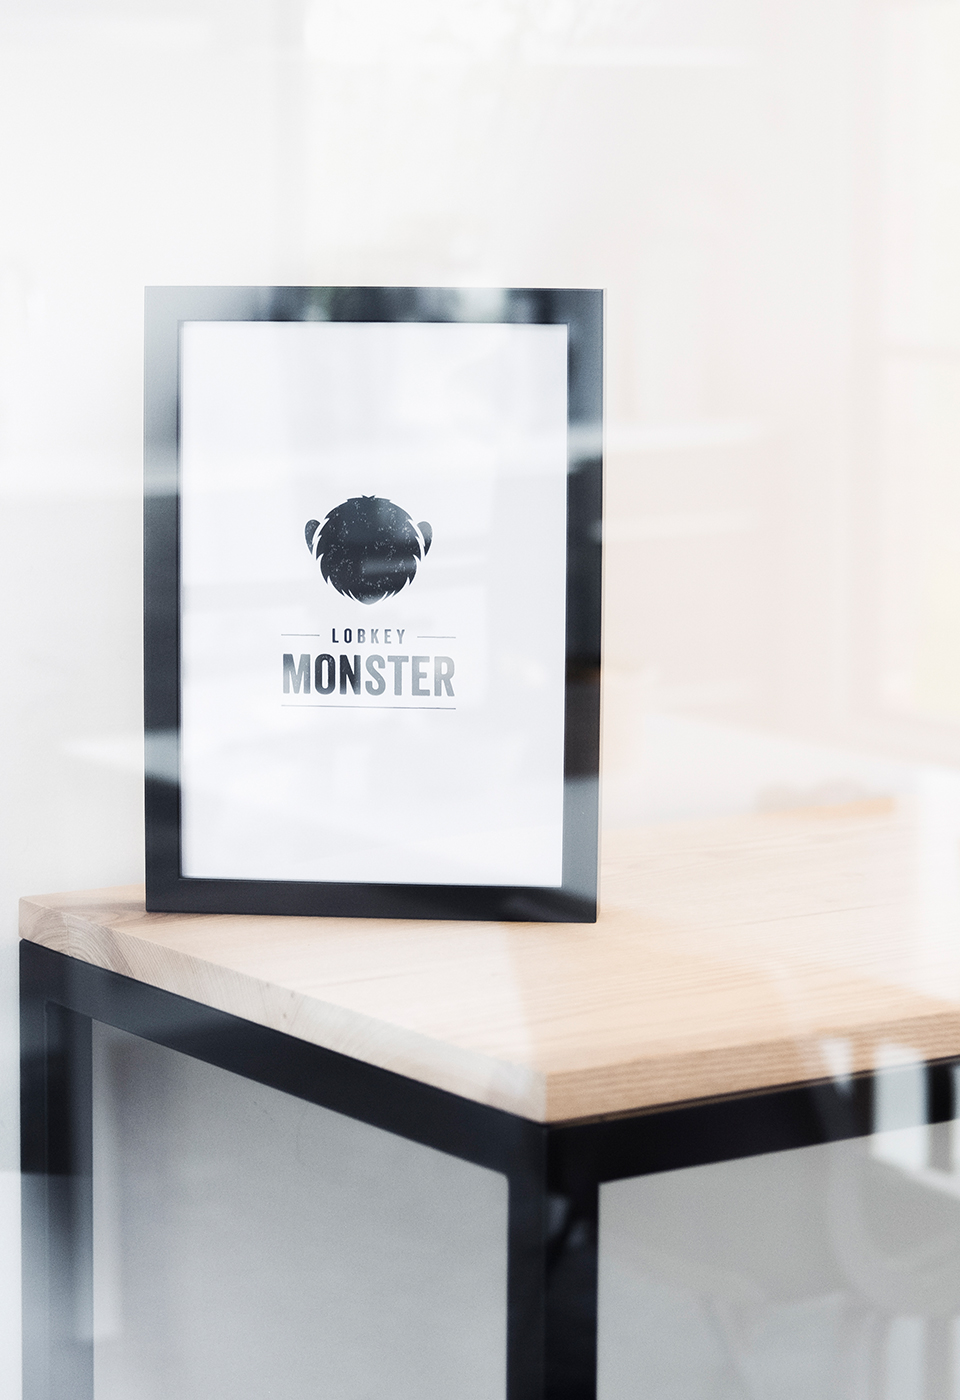 Lobkey Monster logo in kader